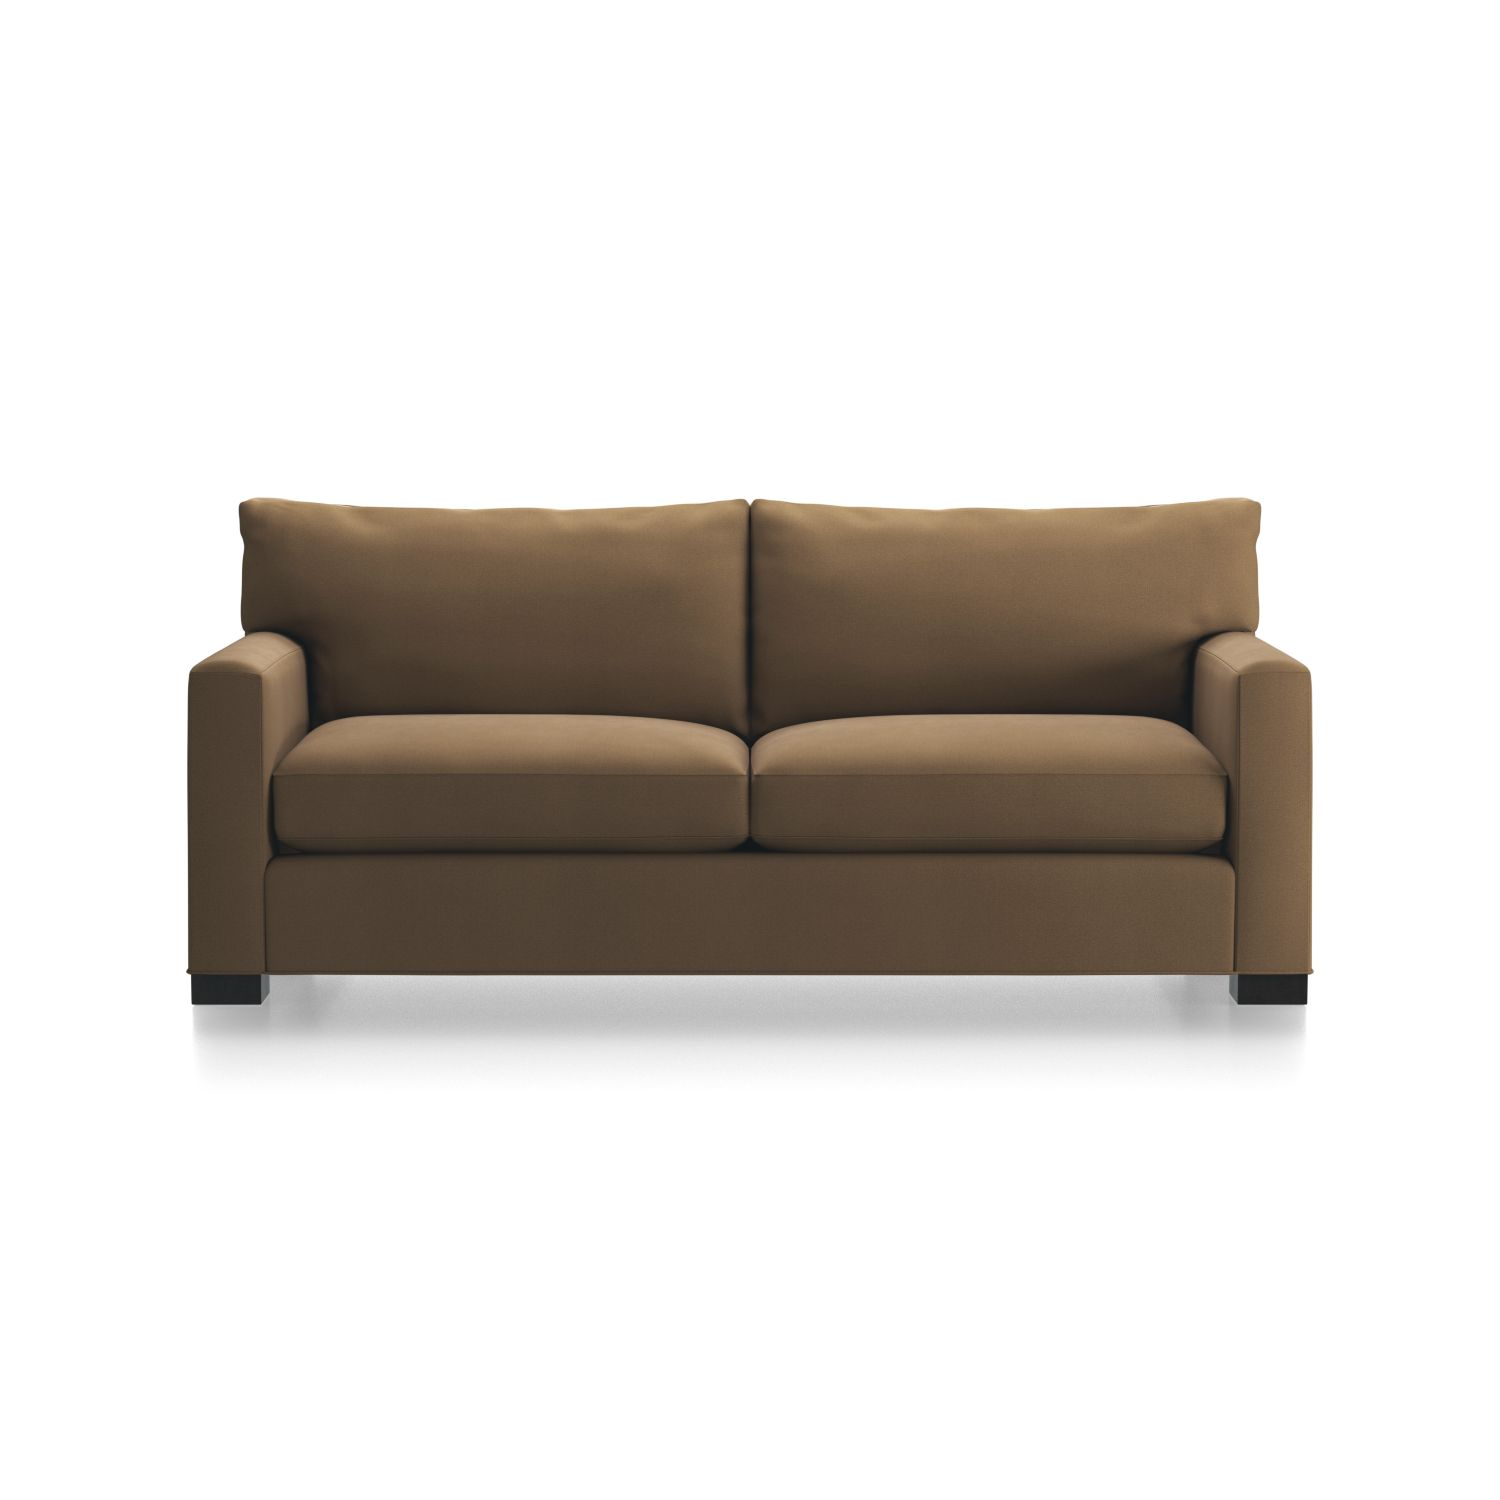 Axis Ii Leather Swivel Chair + Reviews | Crate And Barrel For Espresso Leather Swivel Chairs (Image 3 of 25)